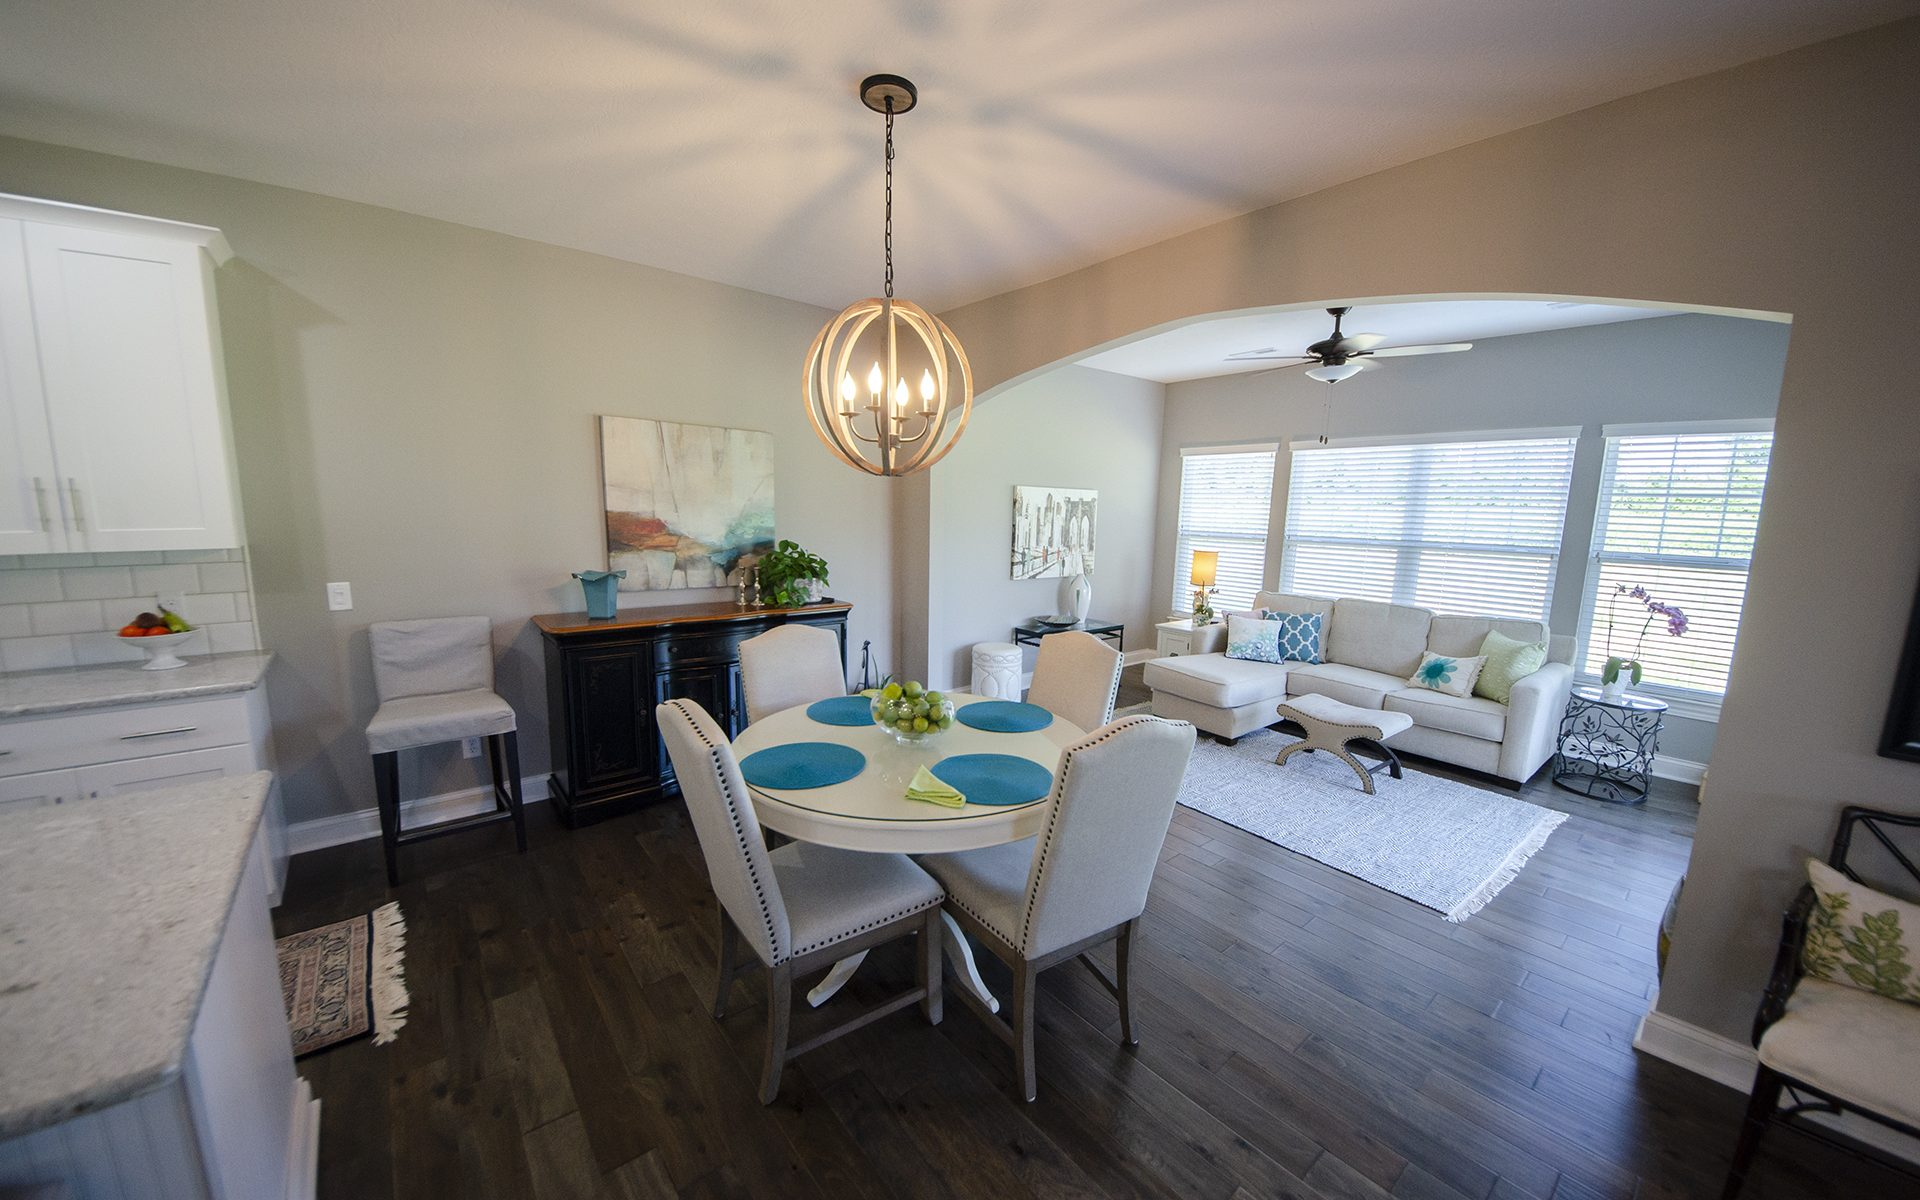 The Design Homes Difference